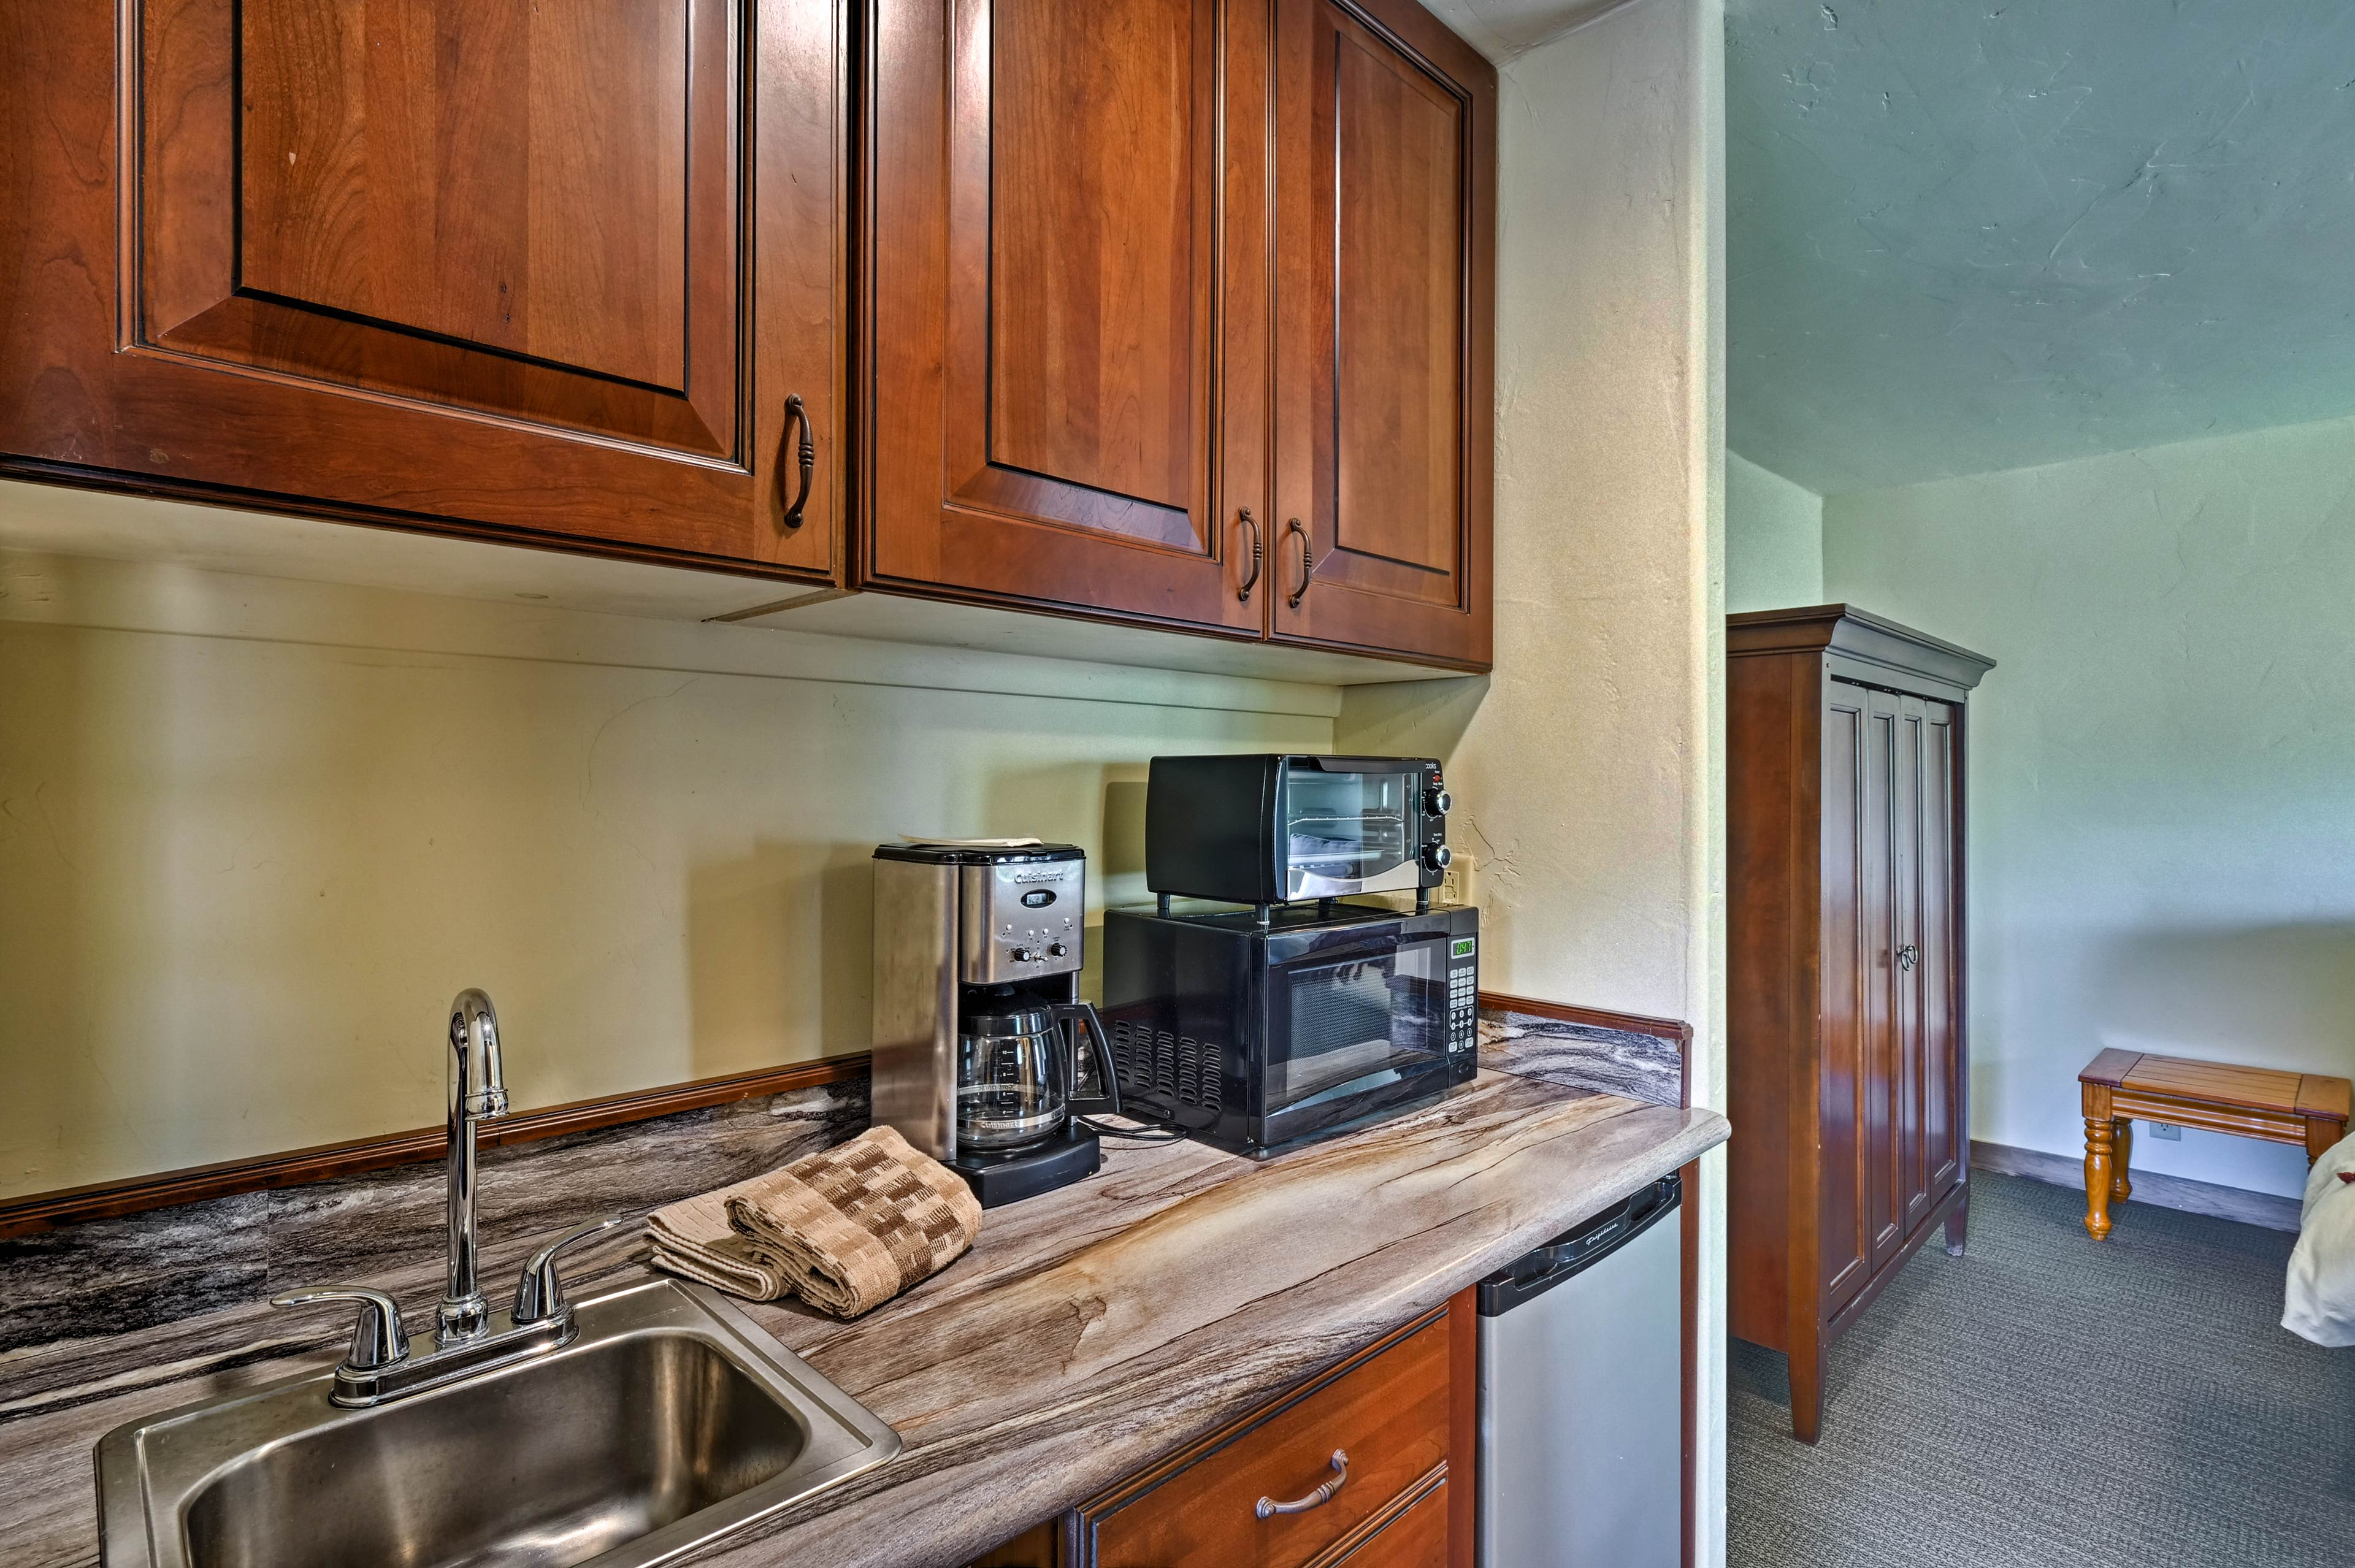 Prepare yummy breakfasts & snacks in the well-equipped kitchenette!